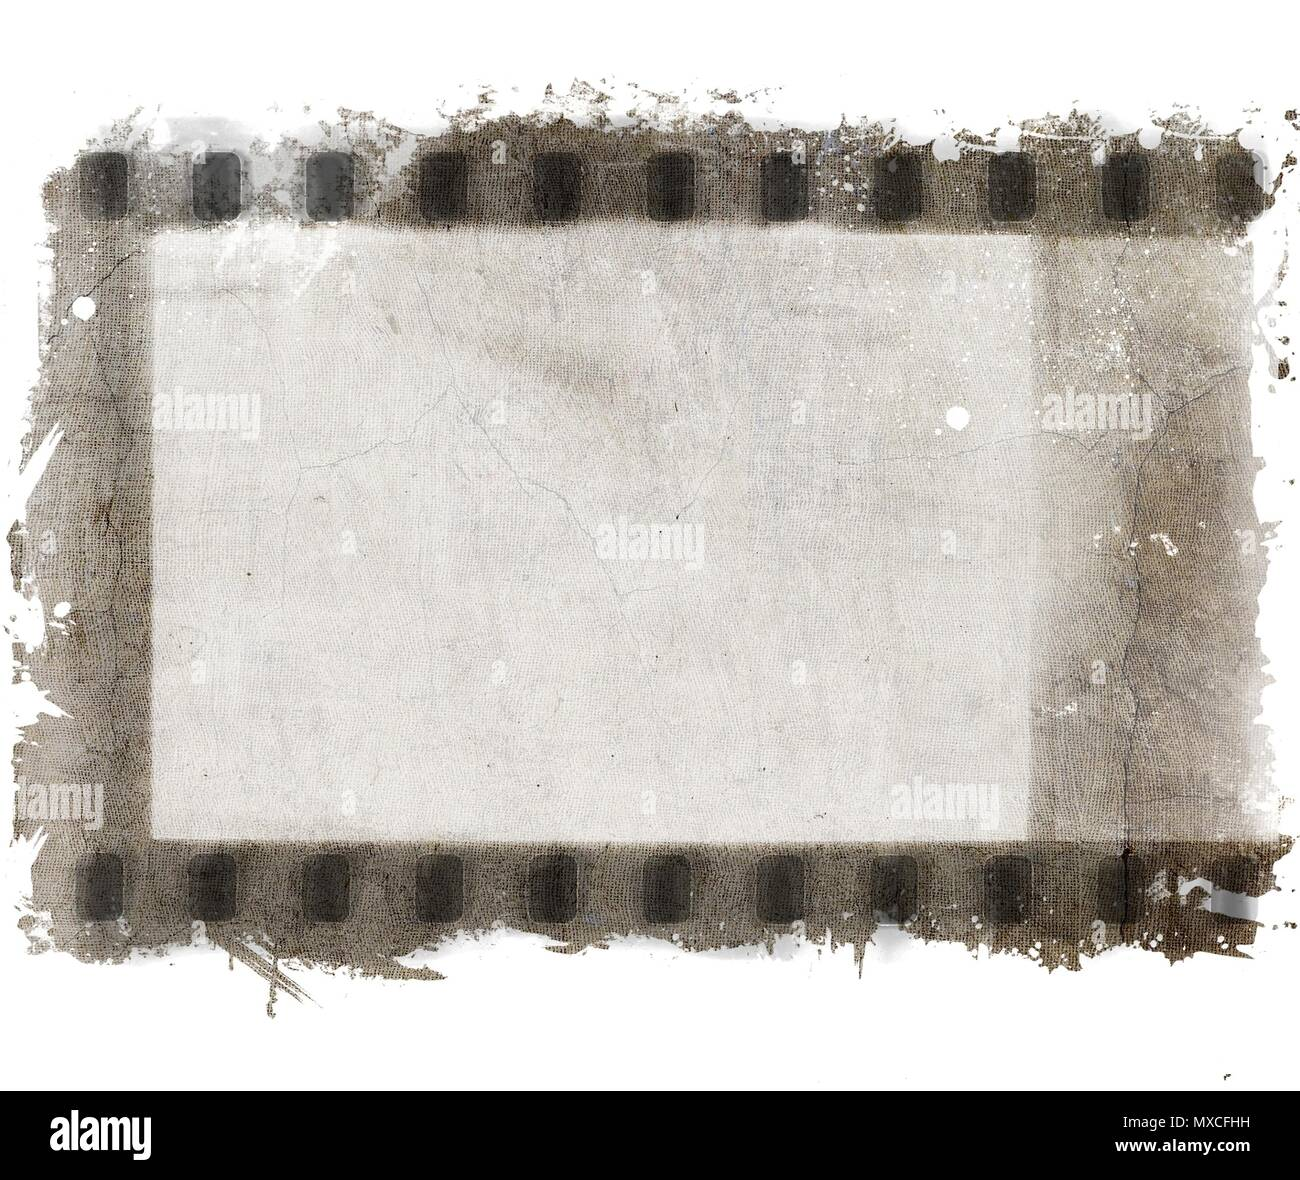 Retro film strip frames in sepia tones with copy space. - Stock Image